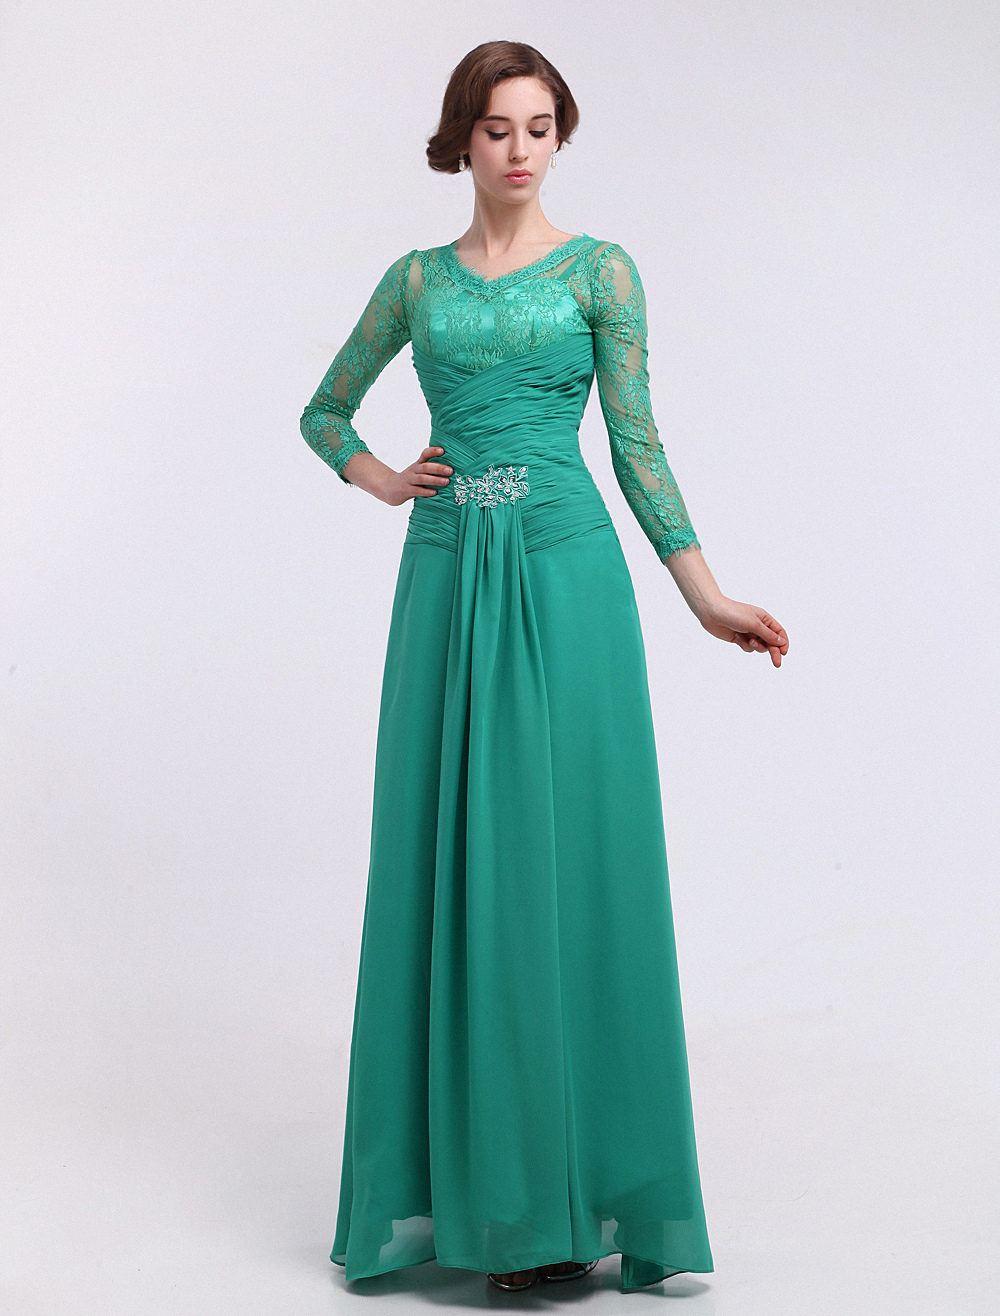 Chiffon Evening Dress Blue Green Ruched Bridal Mother Dress Lace Beaded V Neck Long Sleeve A Line Floor Length Party Dress Milanoo